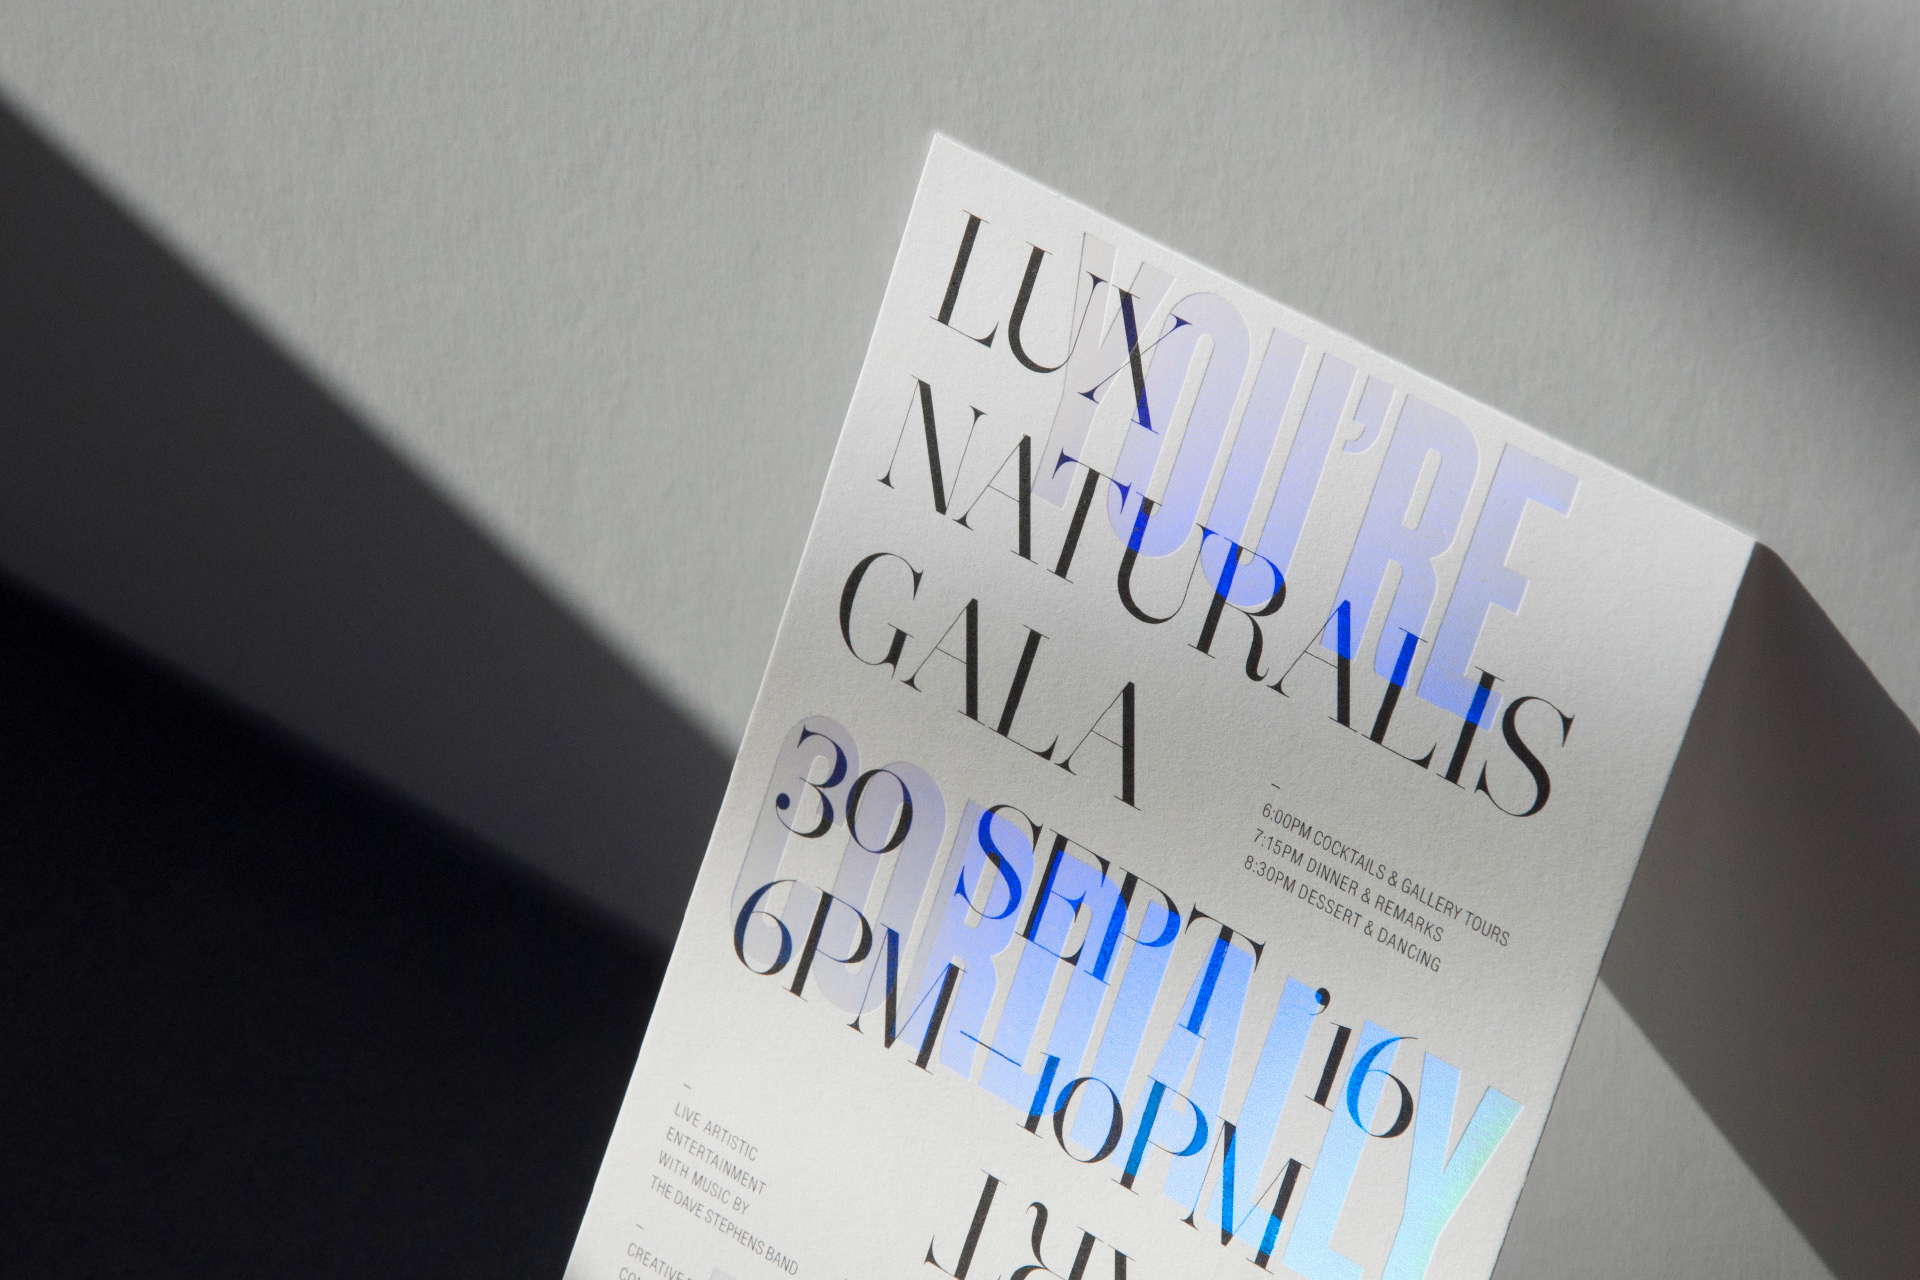 Lux Naturalis Gala Invitation On Behance